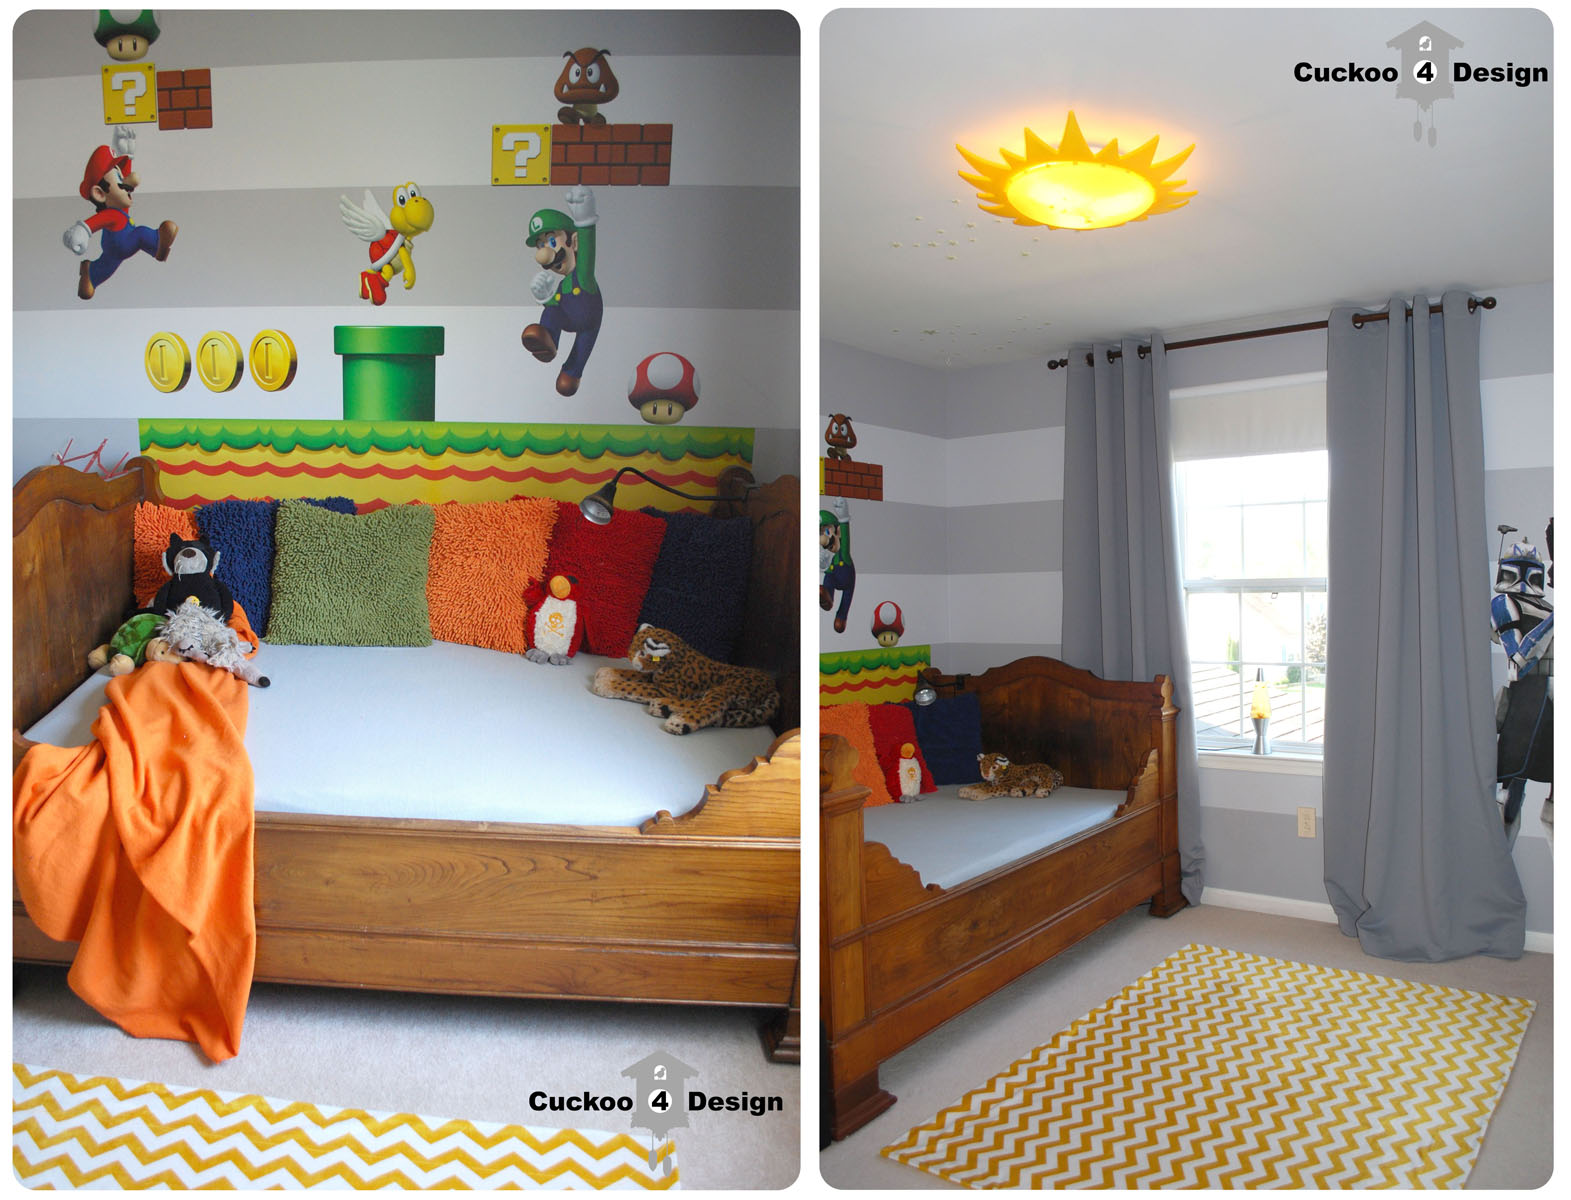 Mario brothers room idea cuckoo4design for Room decor for 5 year old boy